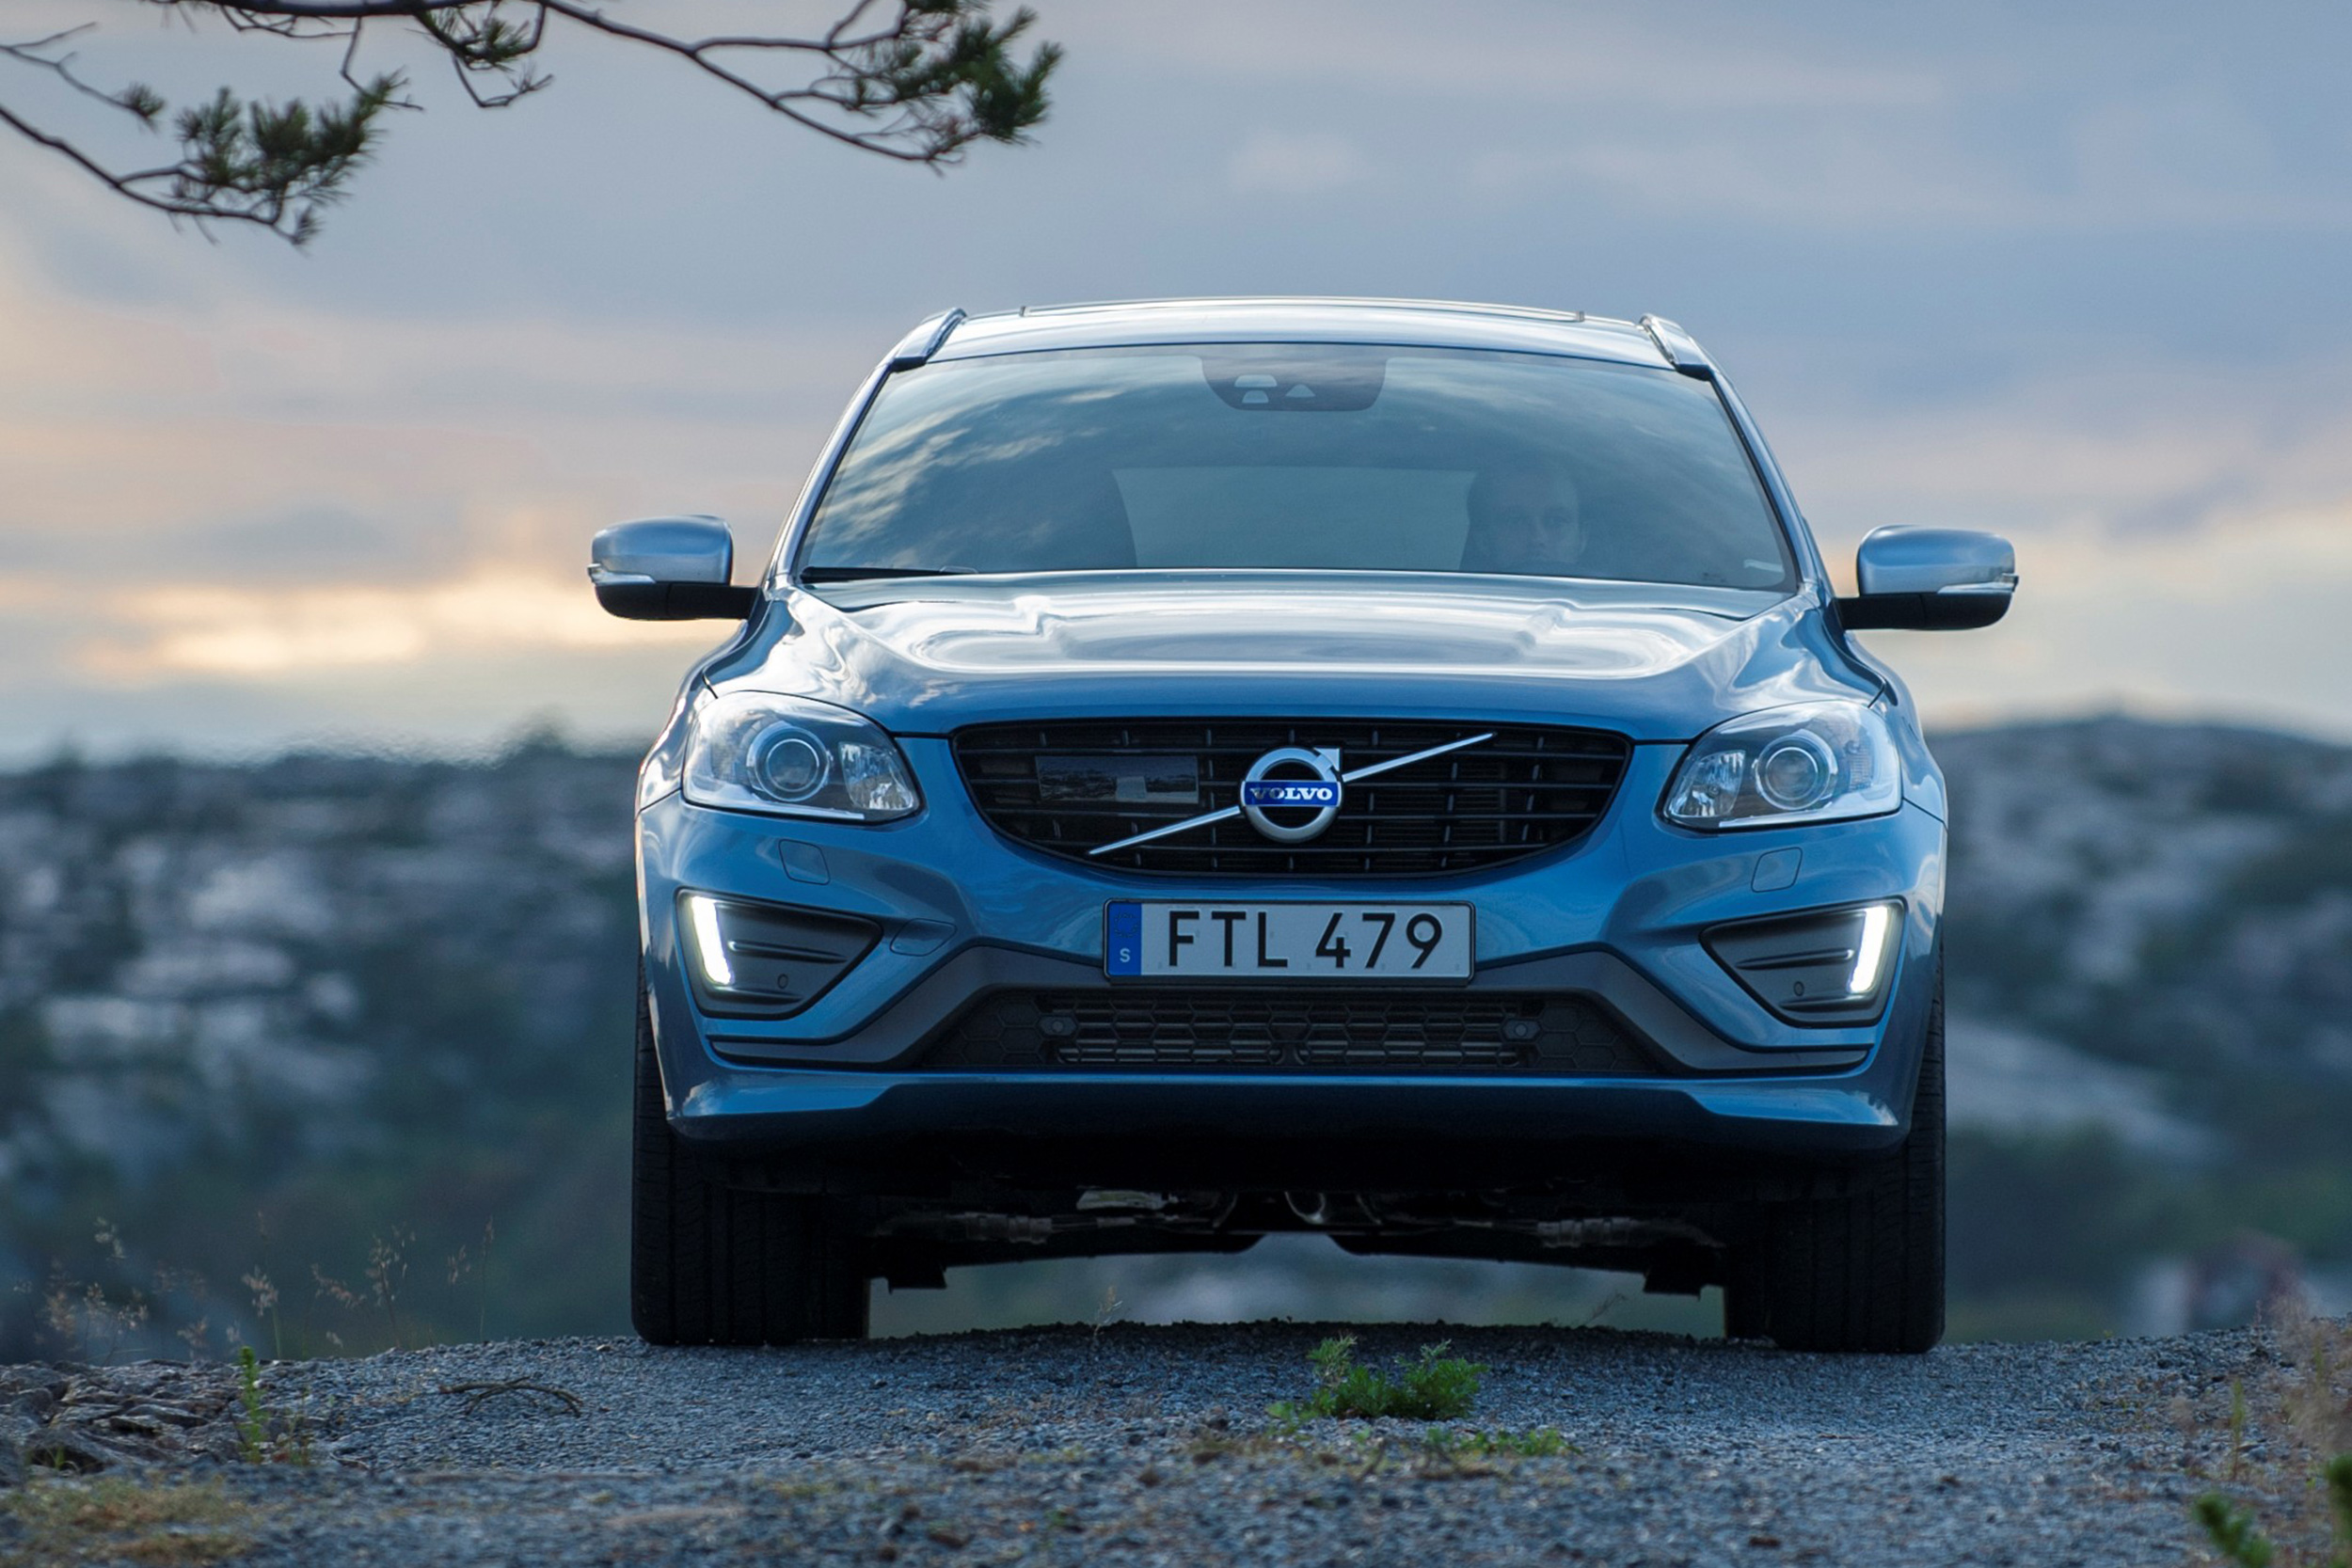 price buyacar review buying hatchback volvo best guide bg ftq prices deals dynamic present and